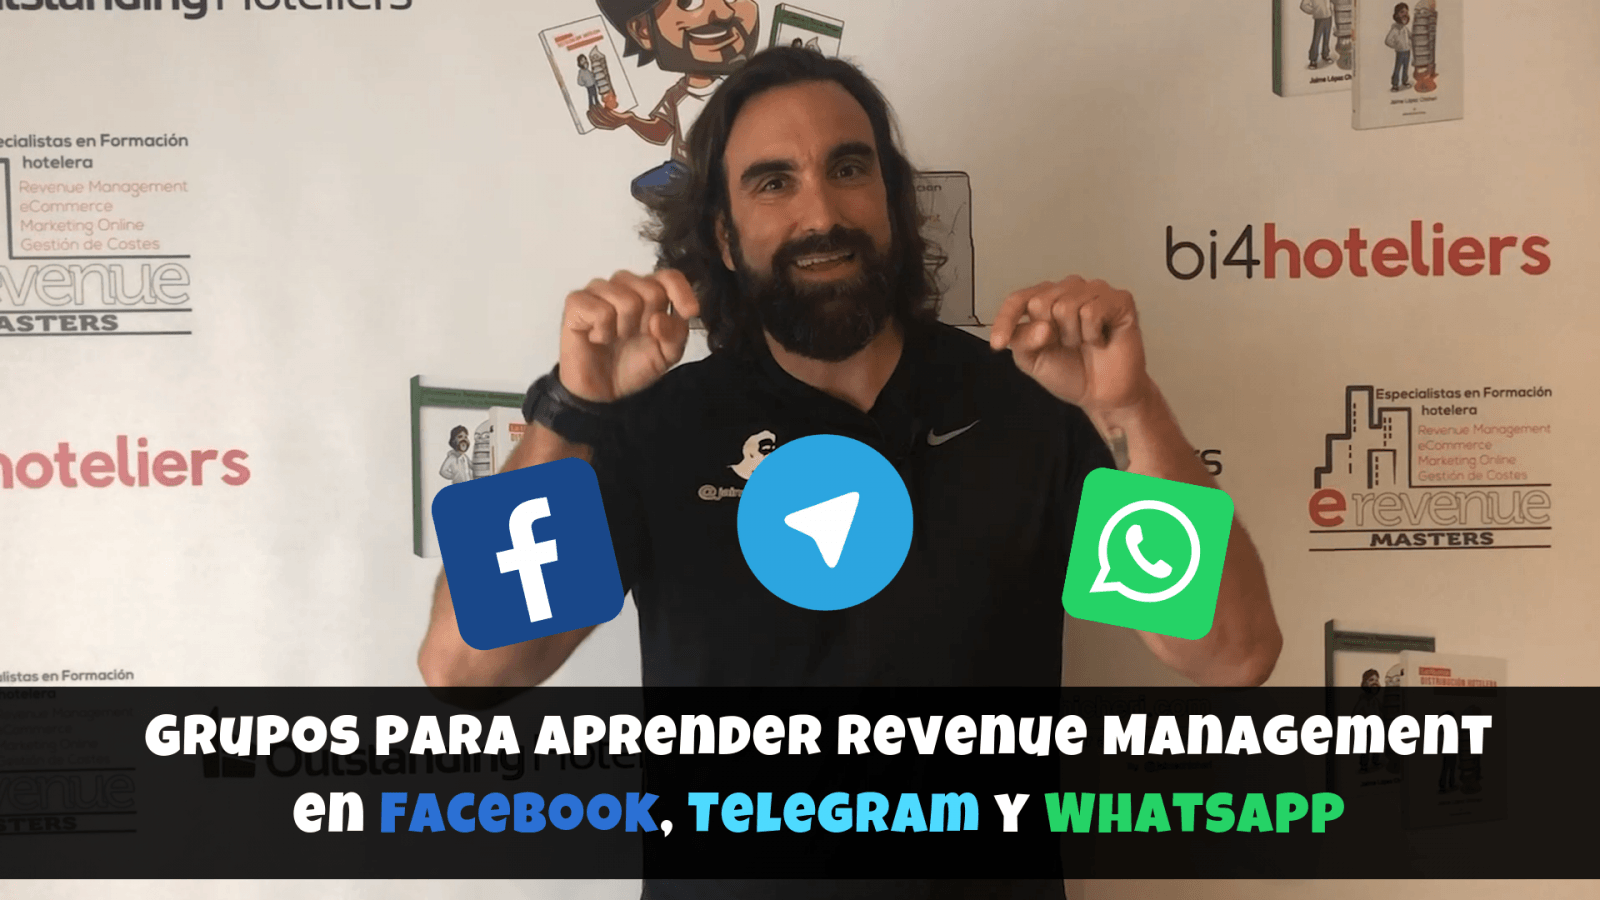 Grupos para aprender Revenue Management en Facebook, Telegram y Whatsapp